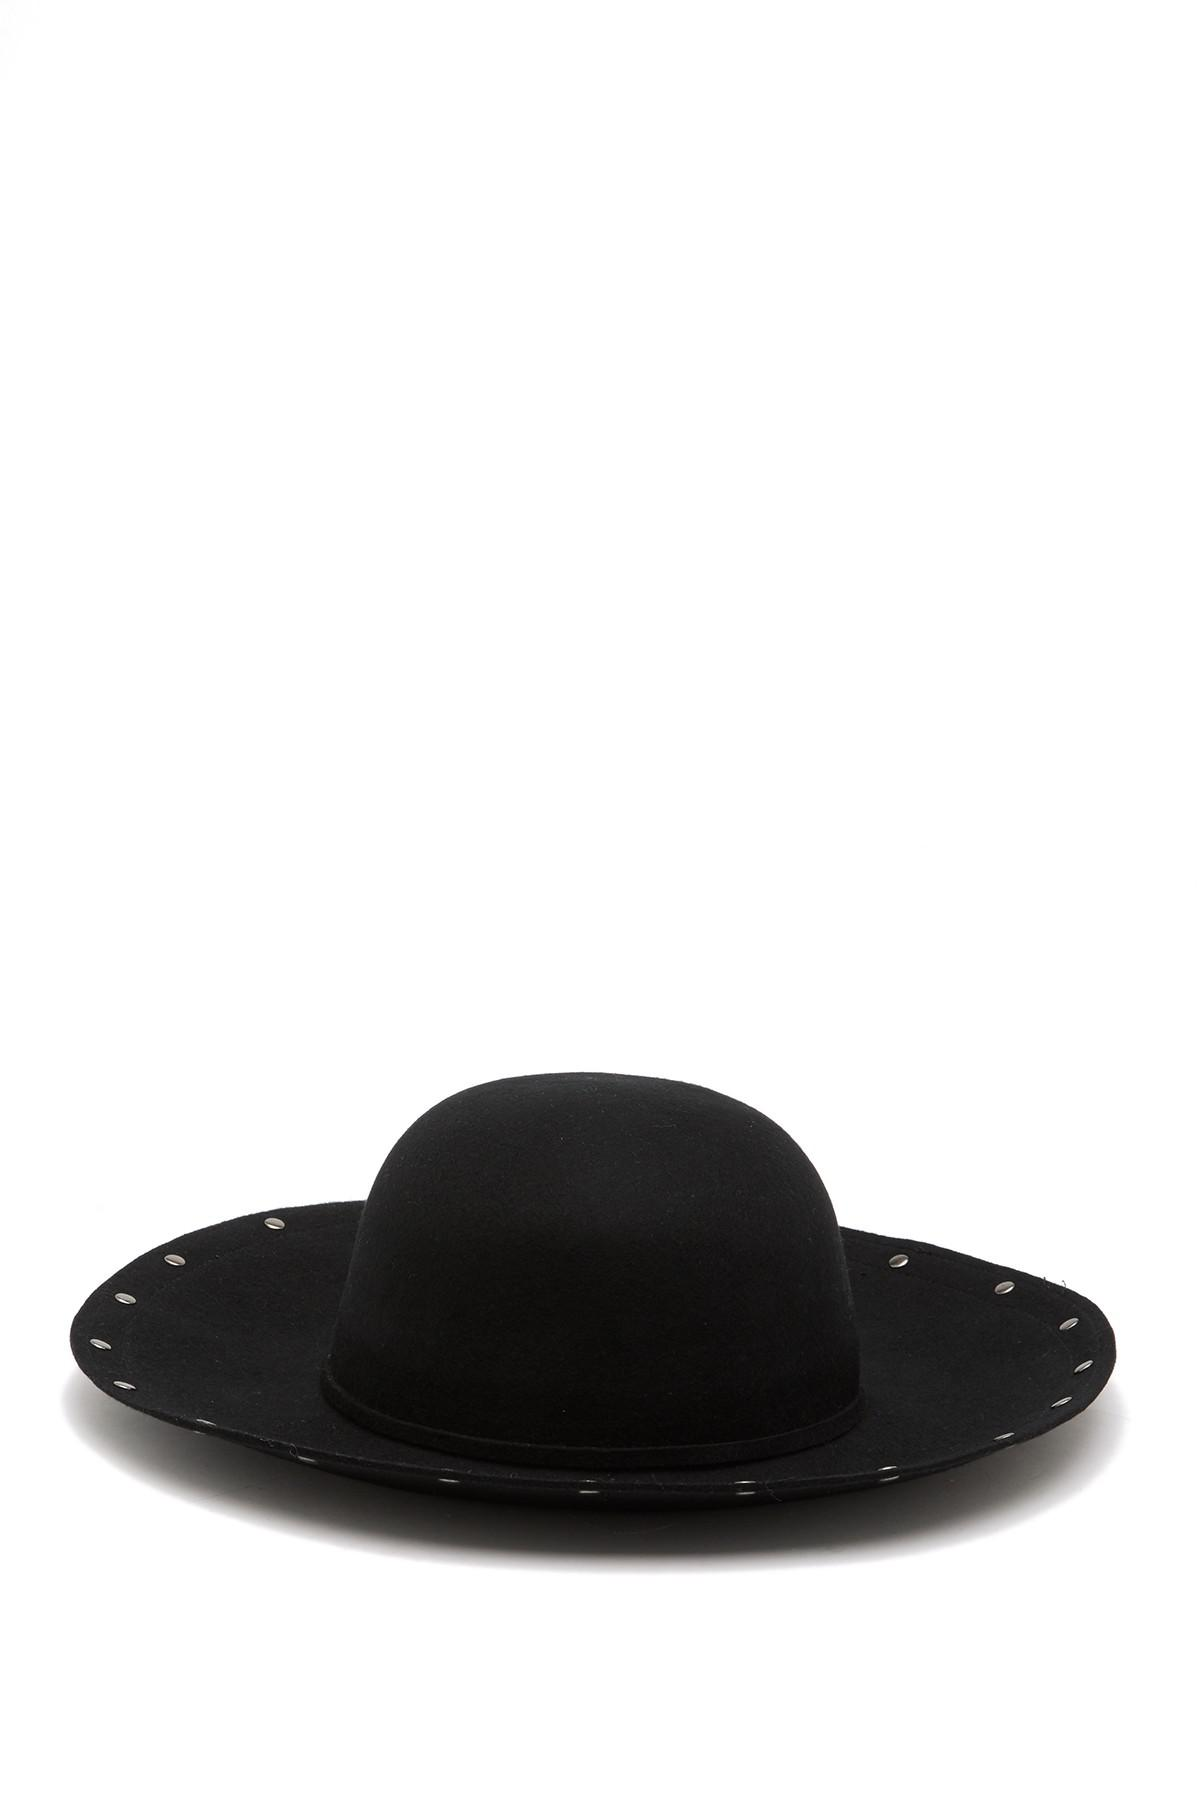 Lyst - Vince Camuto Studded Floppy Wool Hat in Black 744253f7f0fd